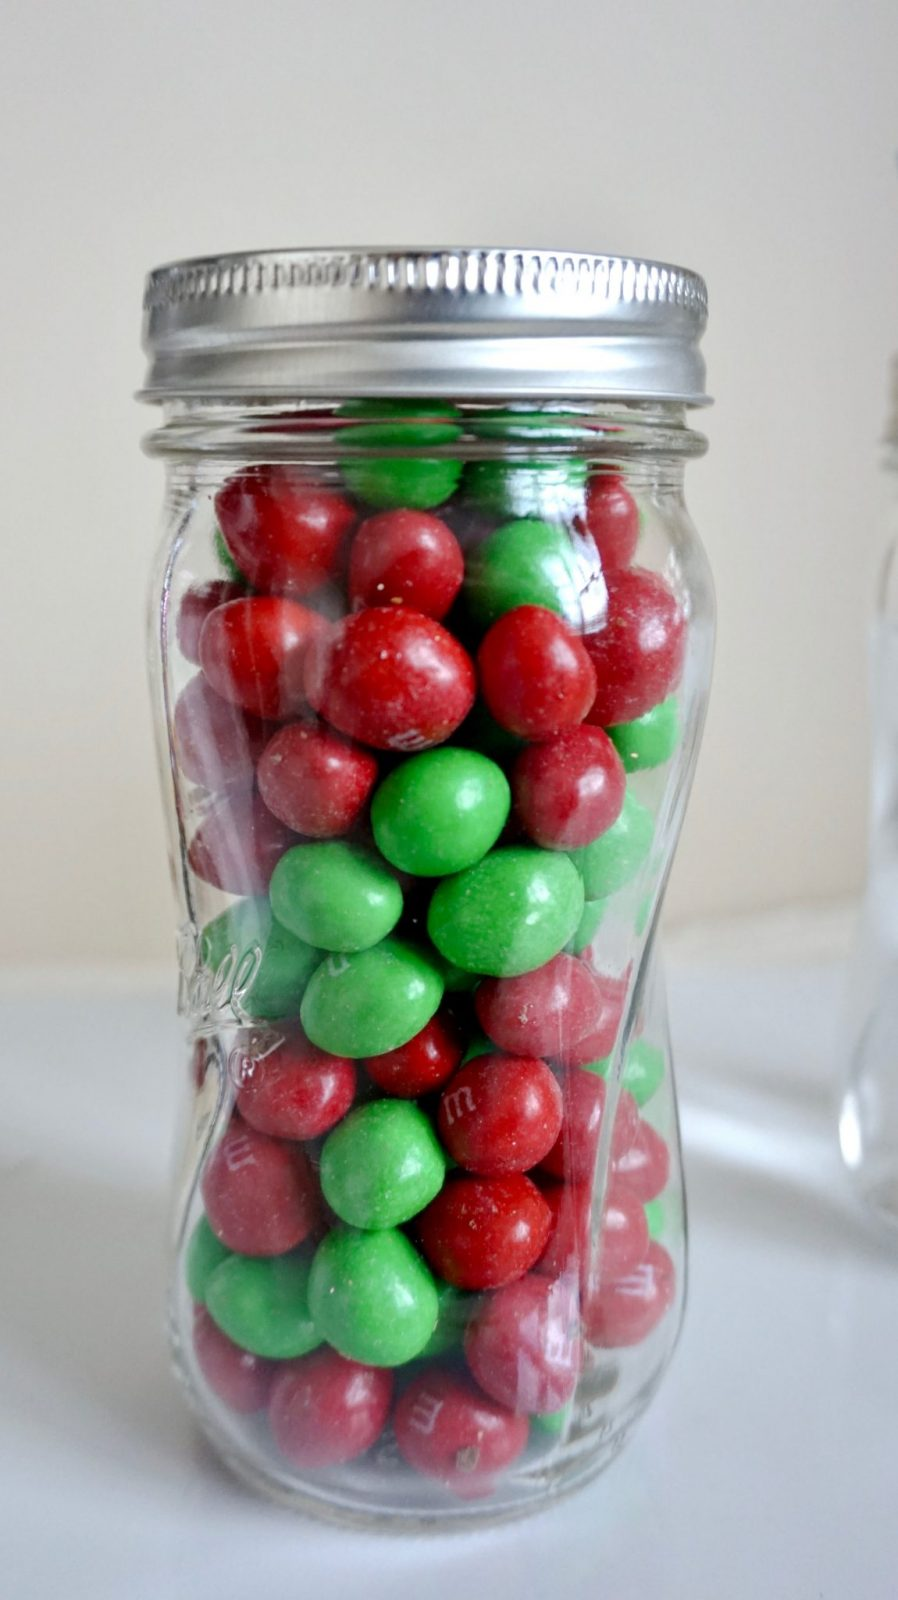 Putting candy in mason jars